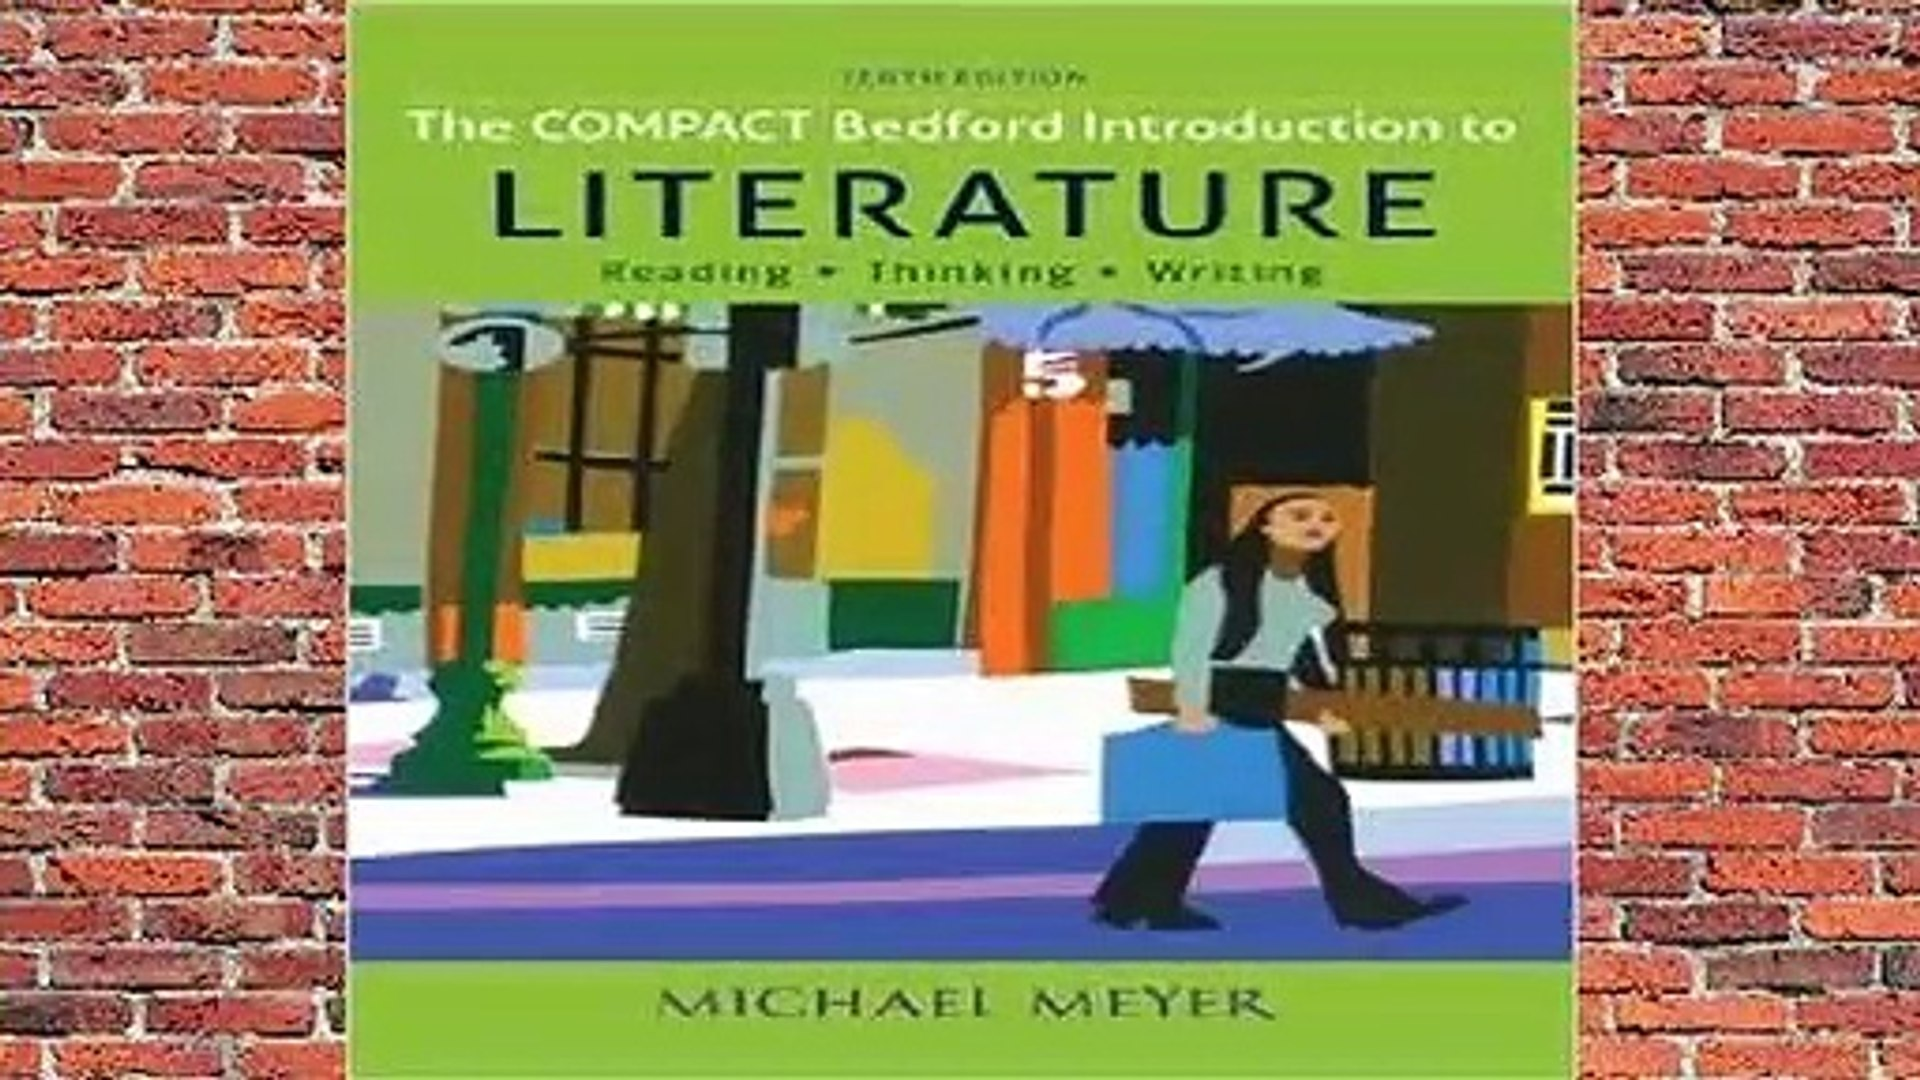 Online The Compact Bedford Introduction to Literature: Reading, Thinking, and Writing  For Full